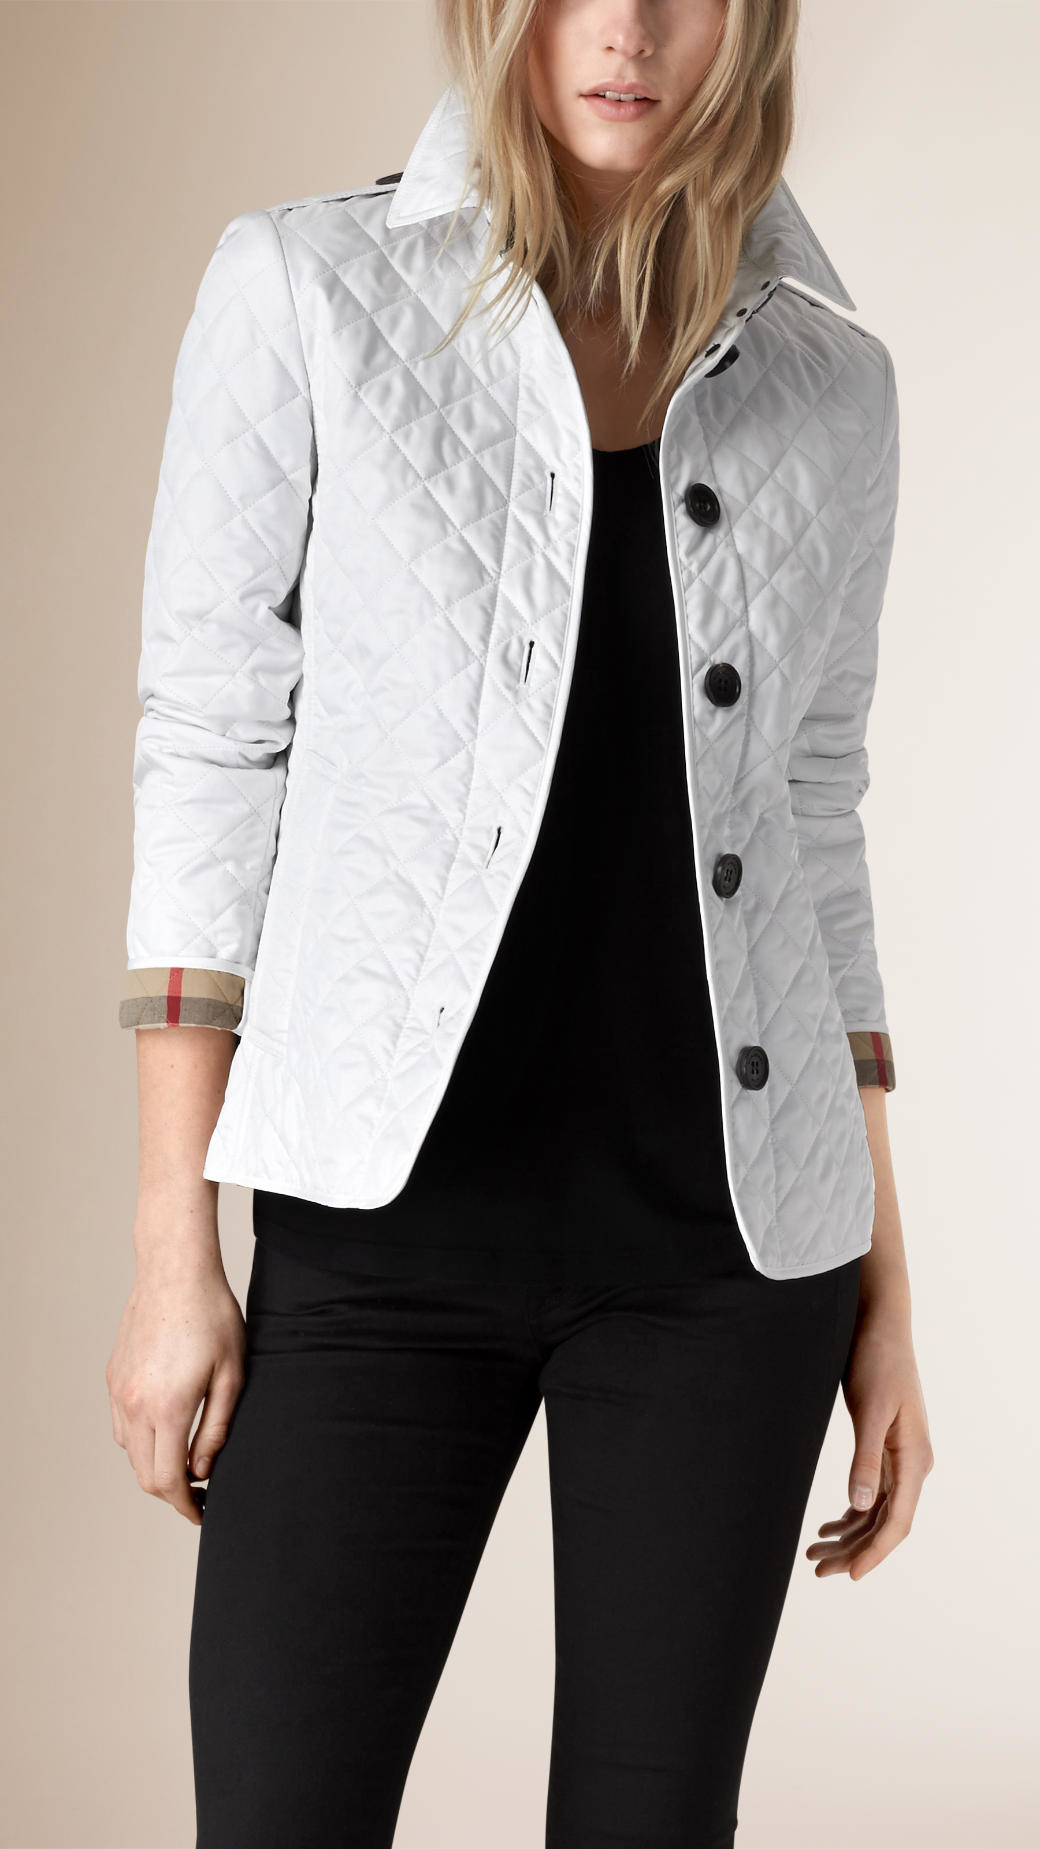 Burberry Diamond-Quilted Jacket in White | Lyst : diamond quilted jacket burberry - Adamdwight.com